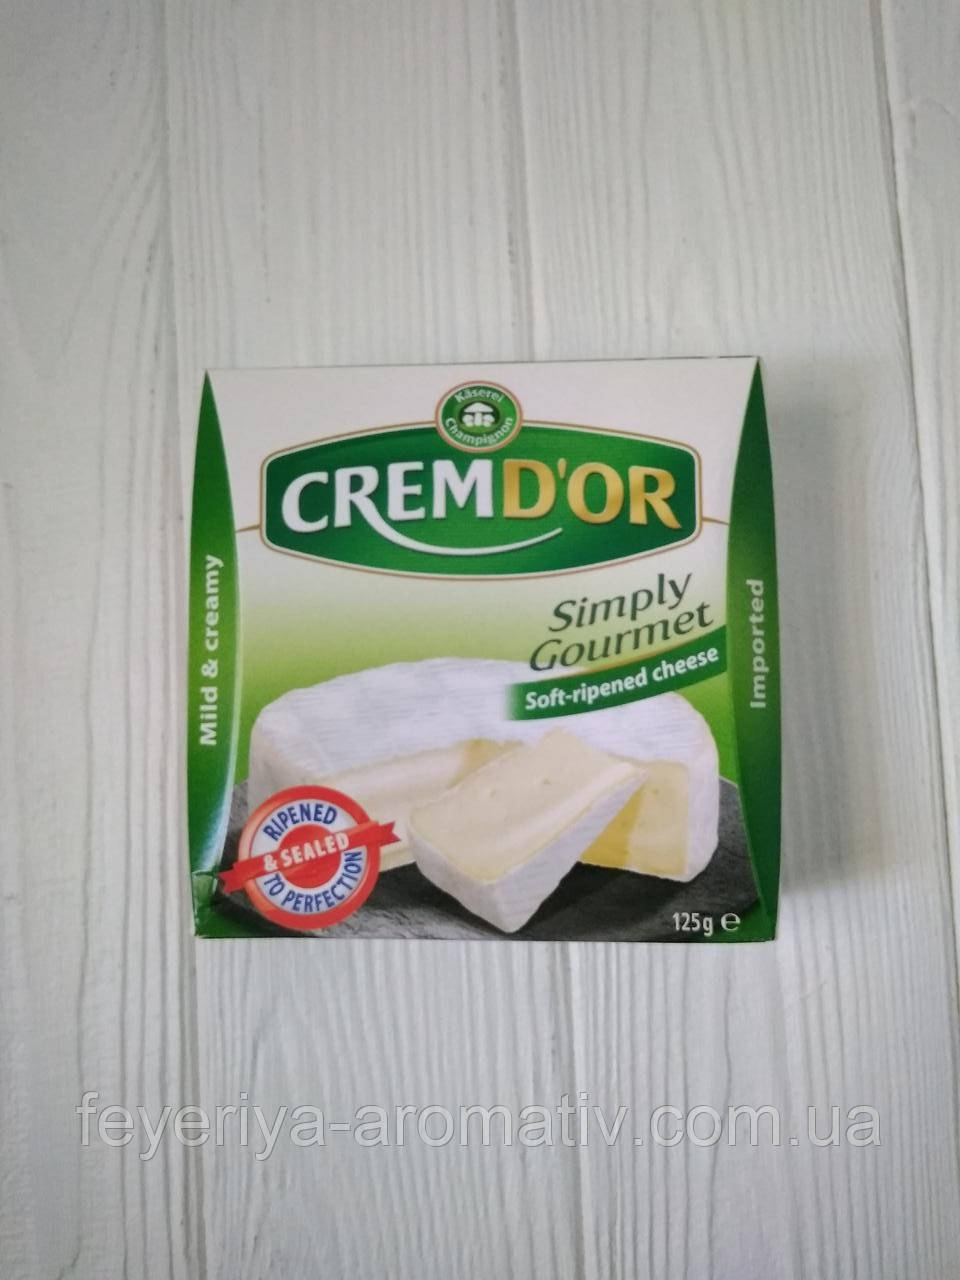 Сыр с белой плесенью Cremd`or Simply Gourmet 125гр (Германия)